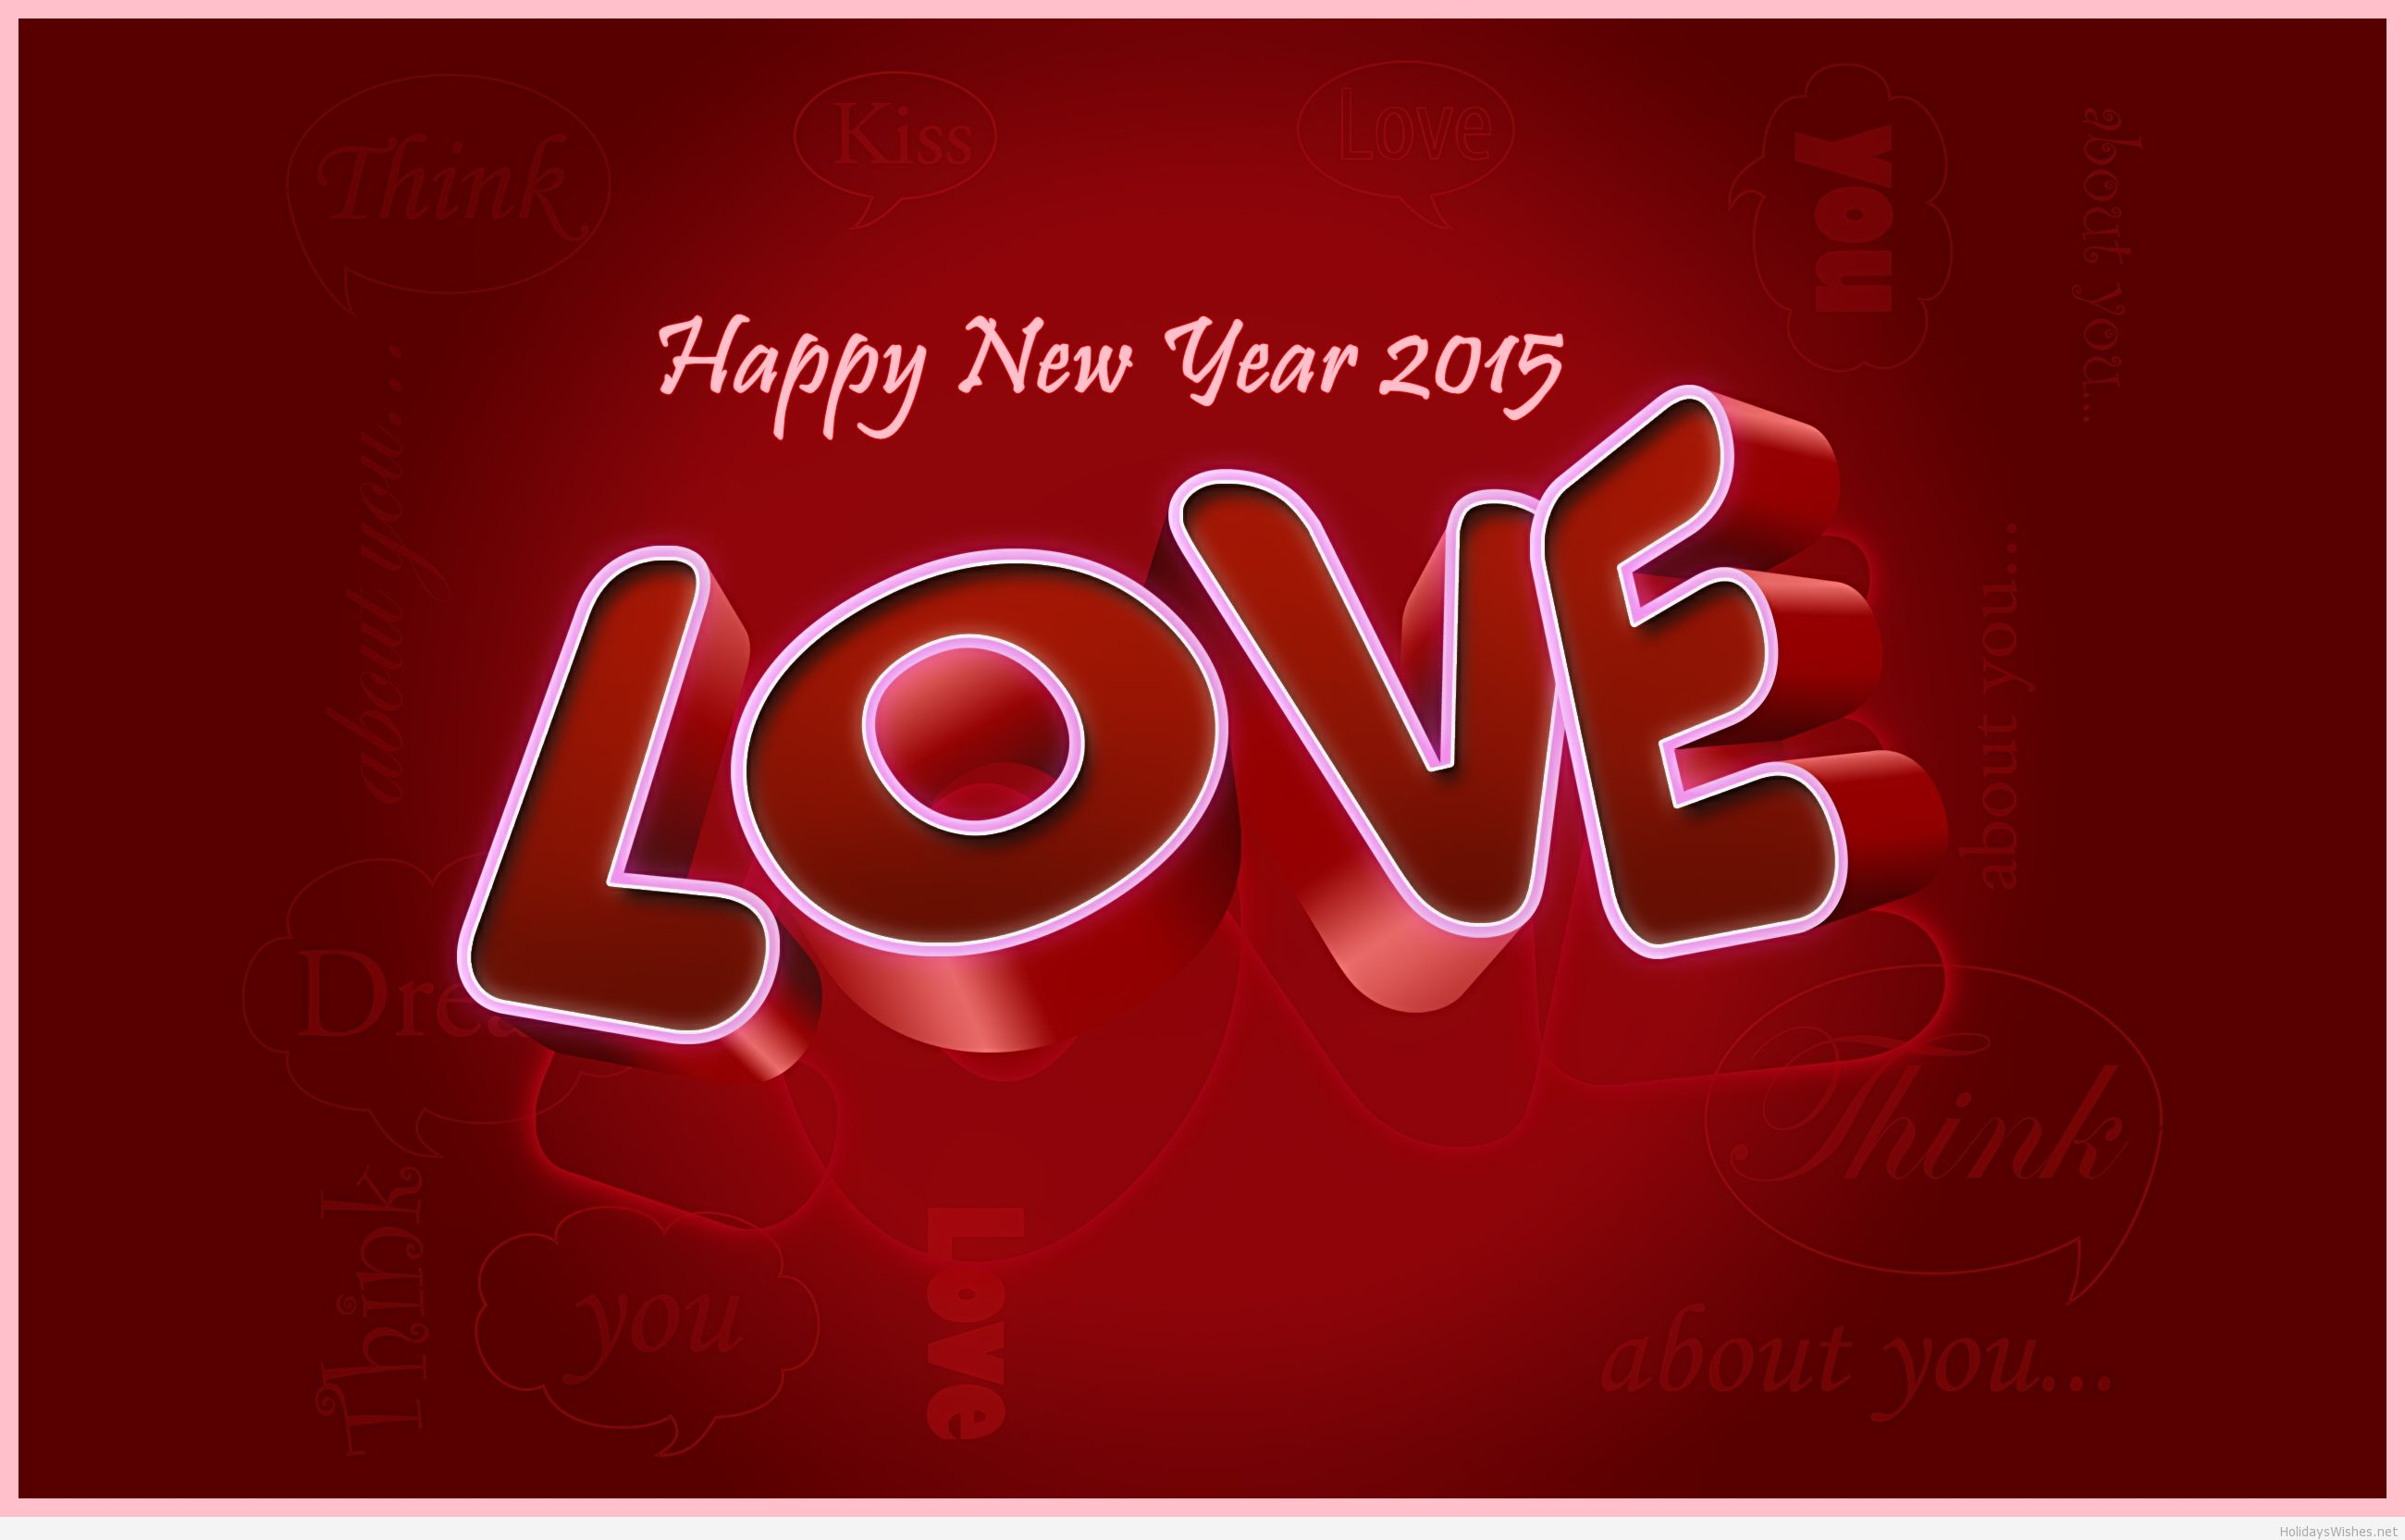 Lovely New Year 2015 Images wallpaper Gallery 2600x1665